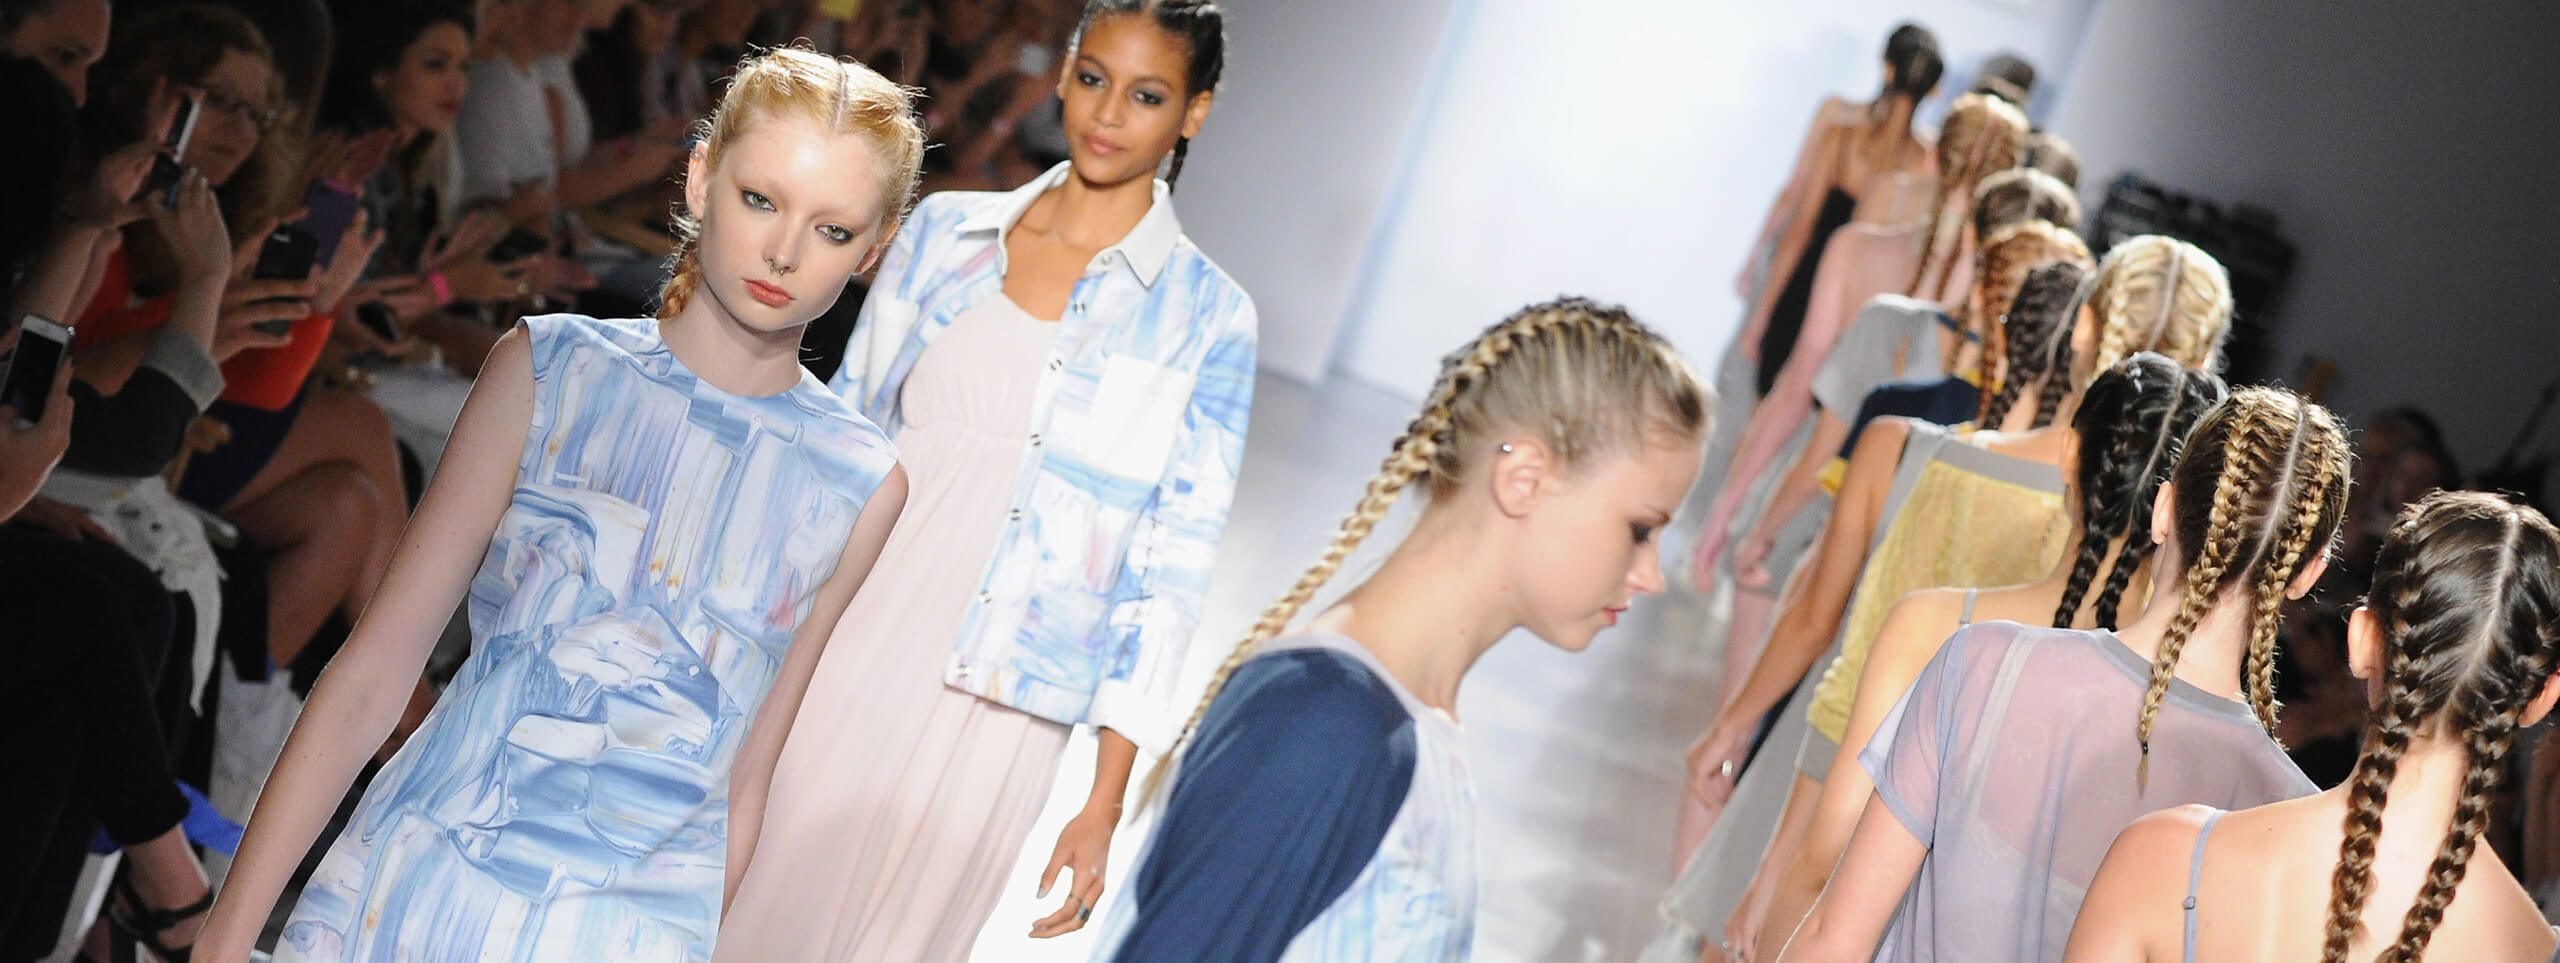 A number of models all with braided hairstyles walking down a catwalk